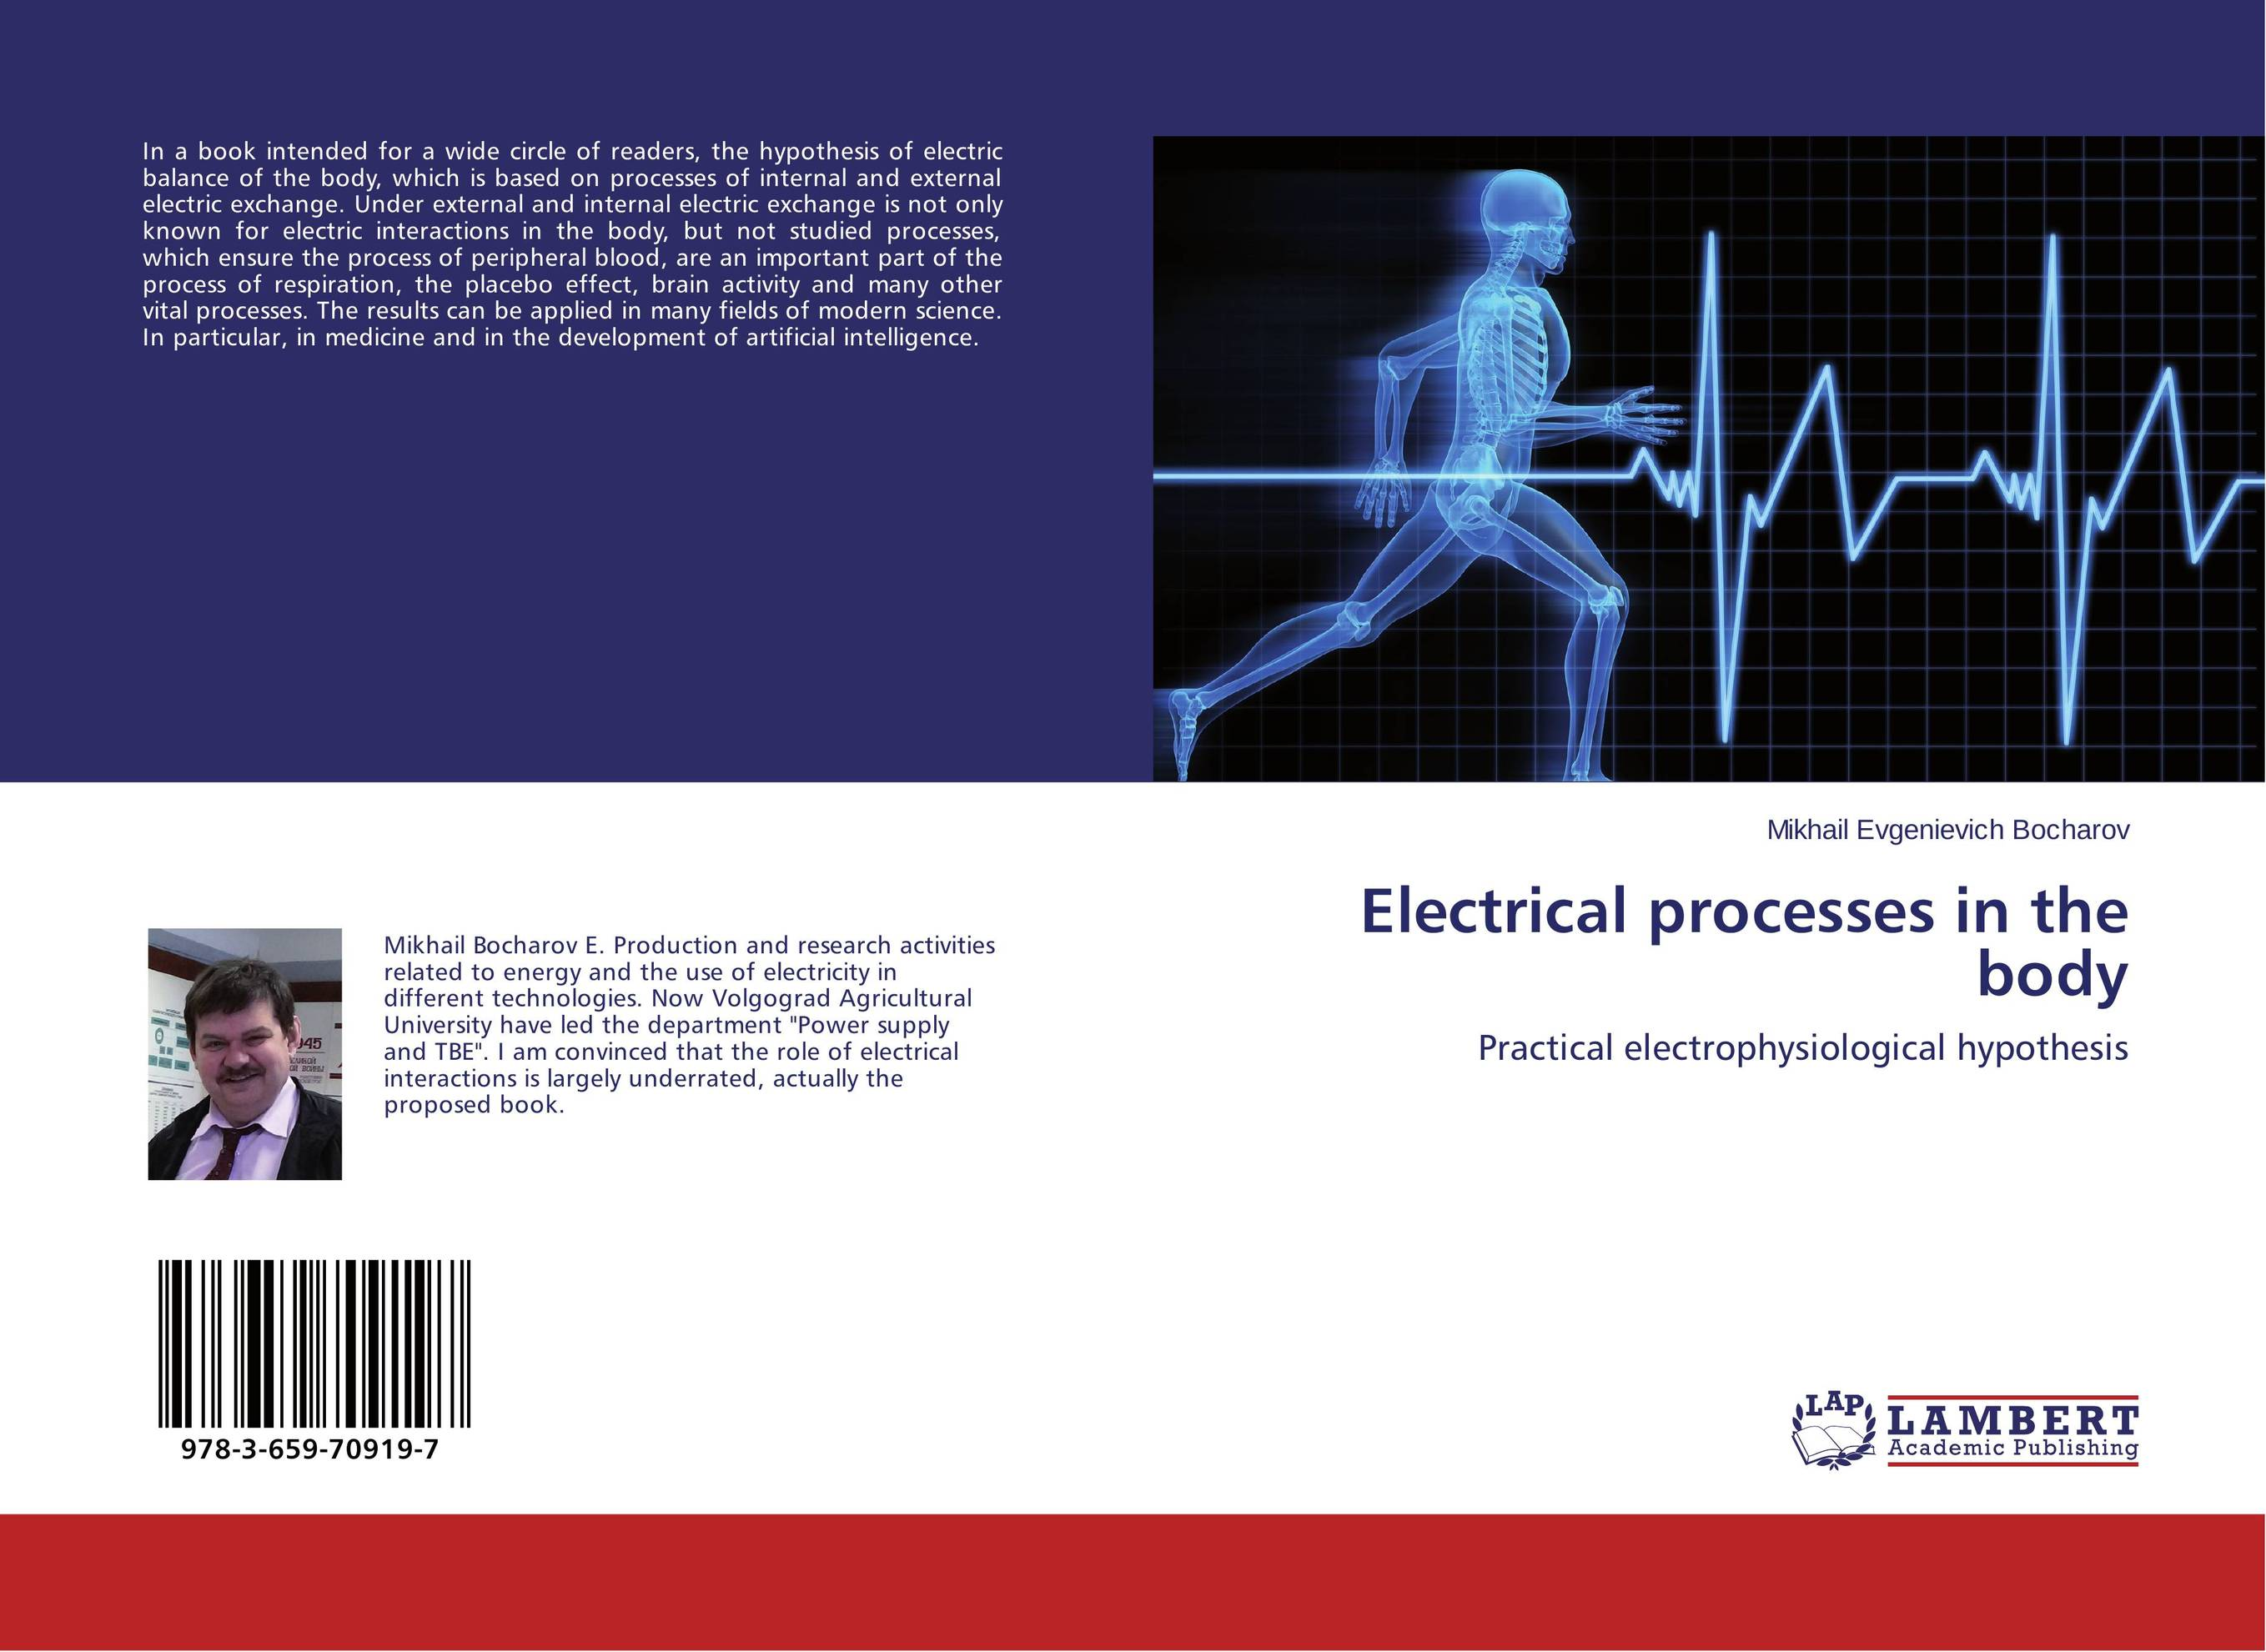 Electrical processes in the body buffet olivier markov decision processes in artificial intelligence